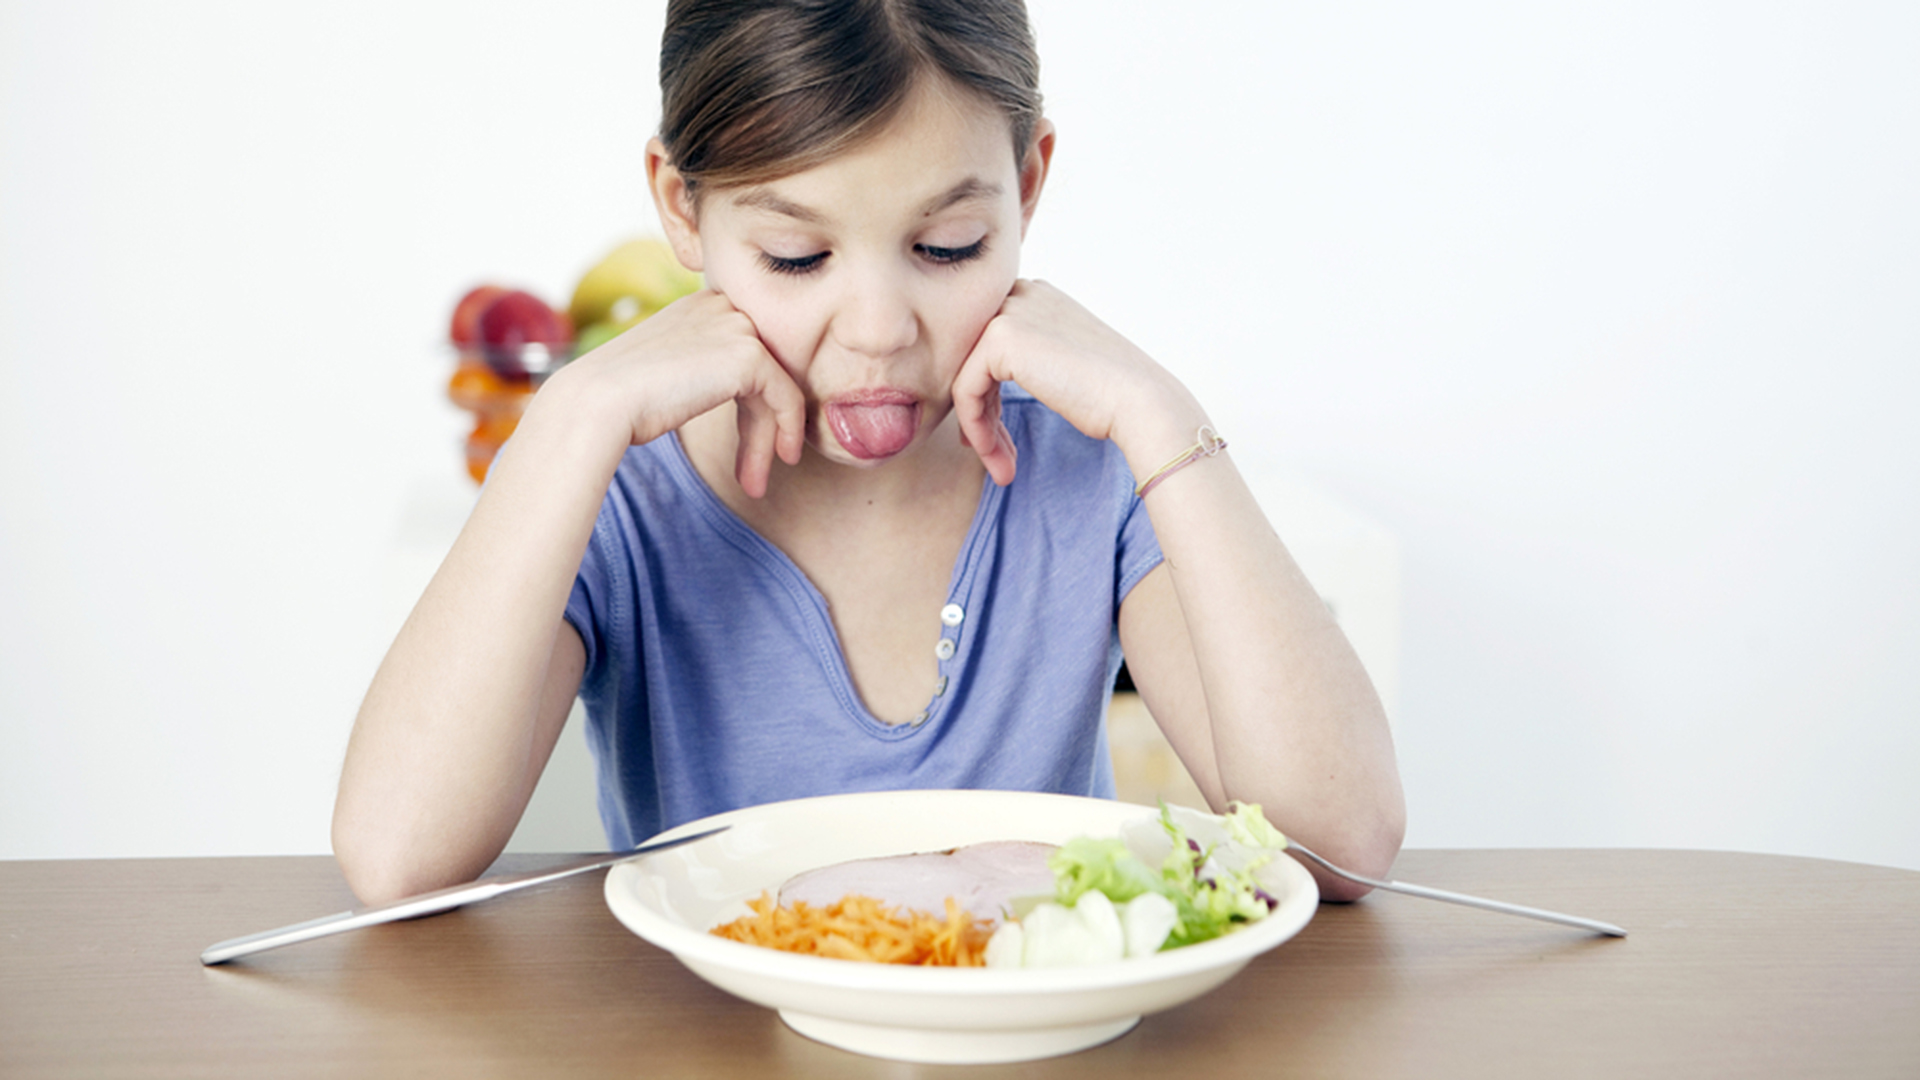 Picky eating linked with psychiatric problems in kids, study finds